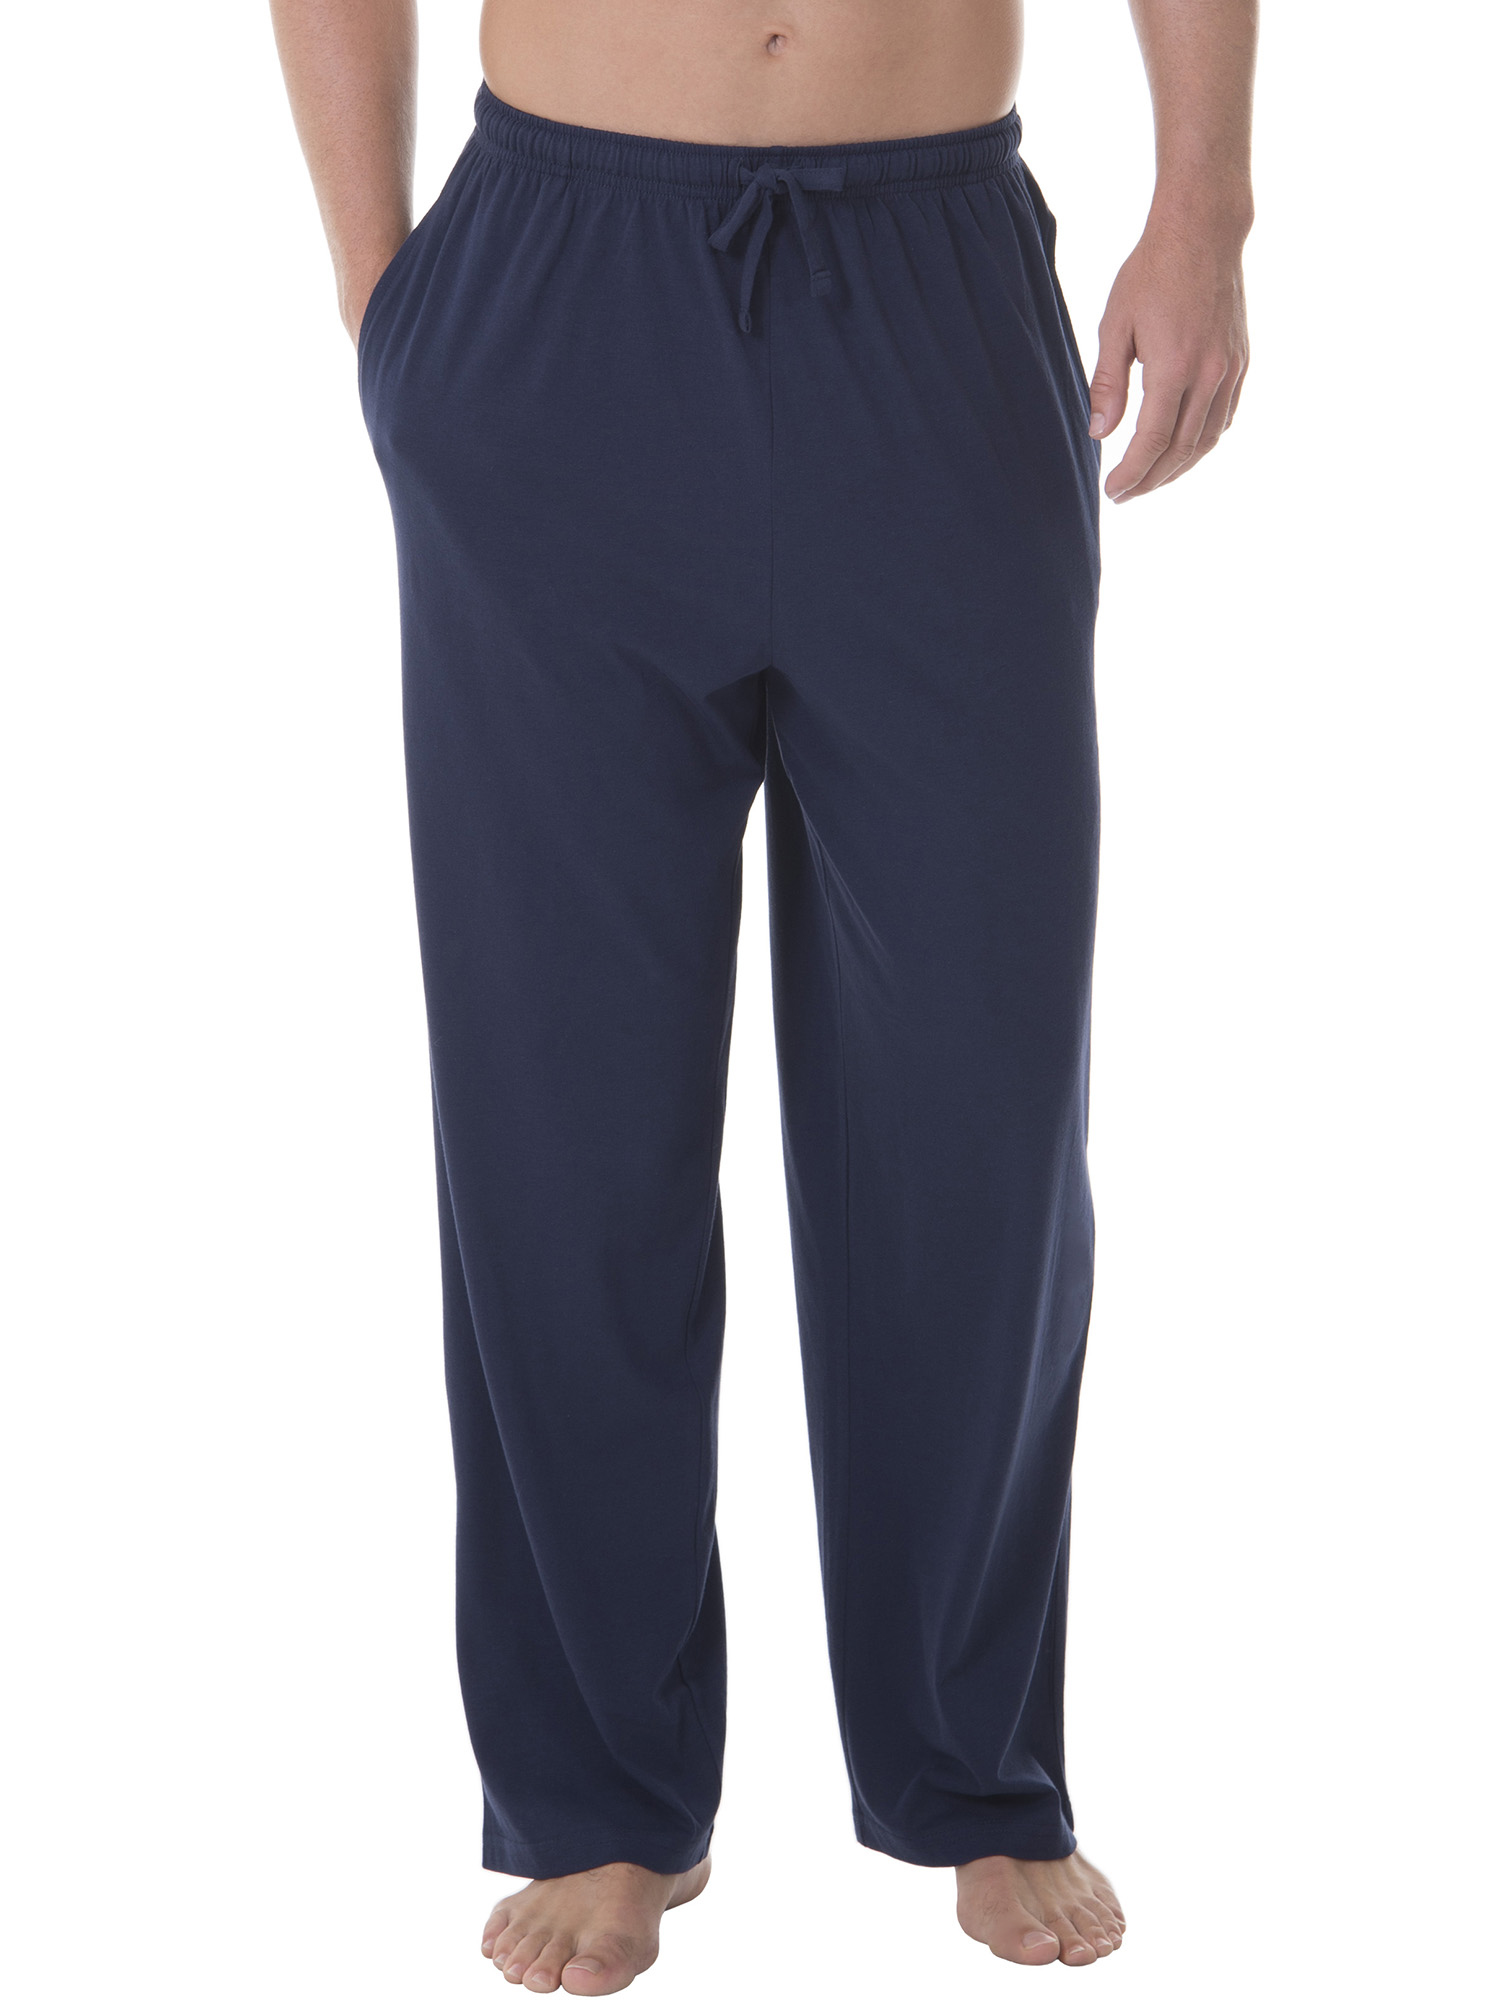 Fruit of the Loom Big and Tall Men's Knit Sleep Pant